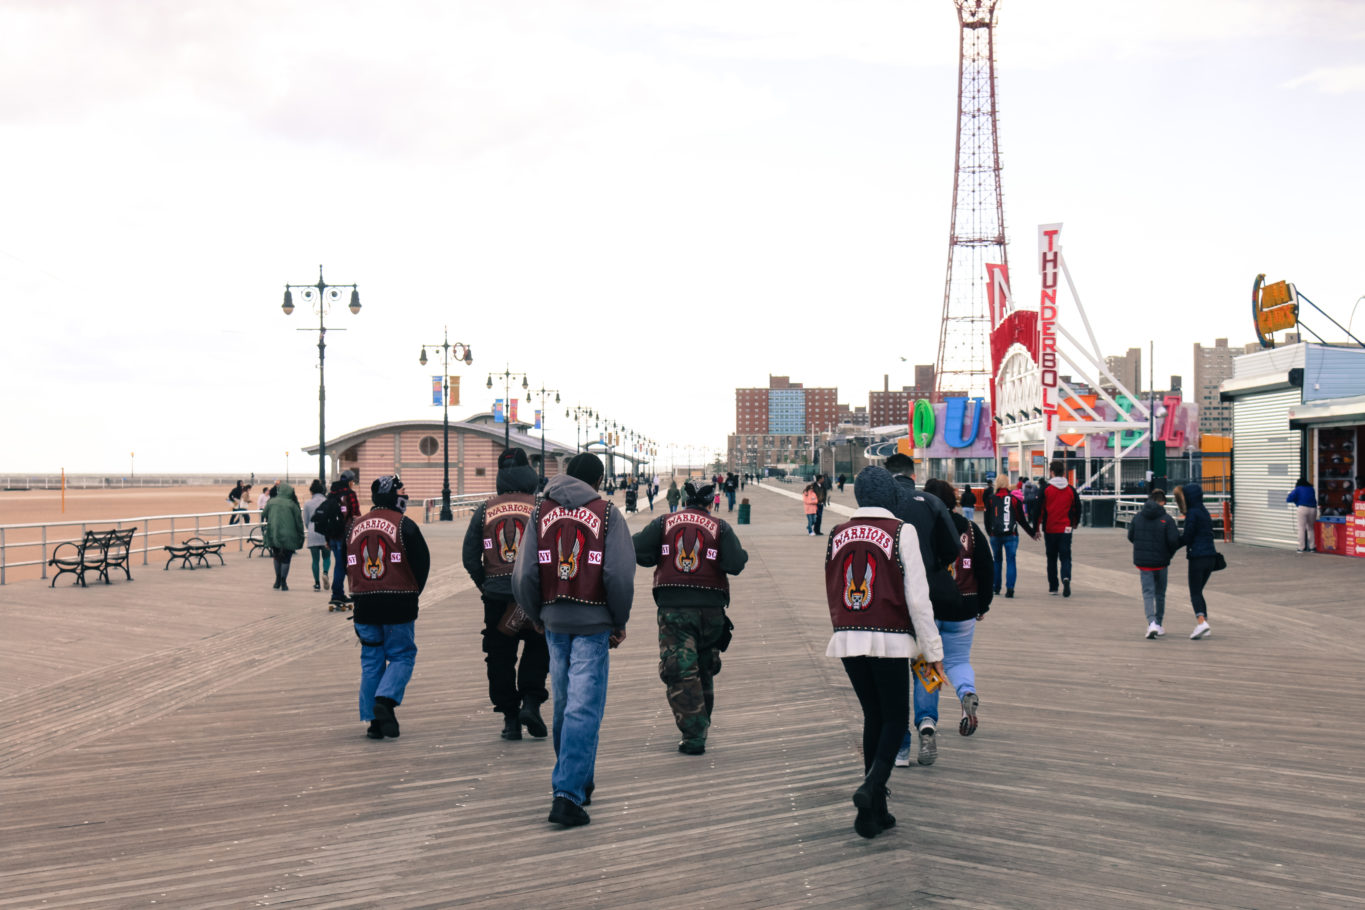 People dressed as The Warriors street gang on the Coney Island boardwalk in Brooklyn NYC